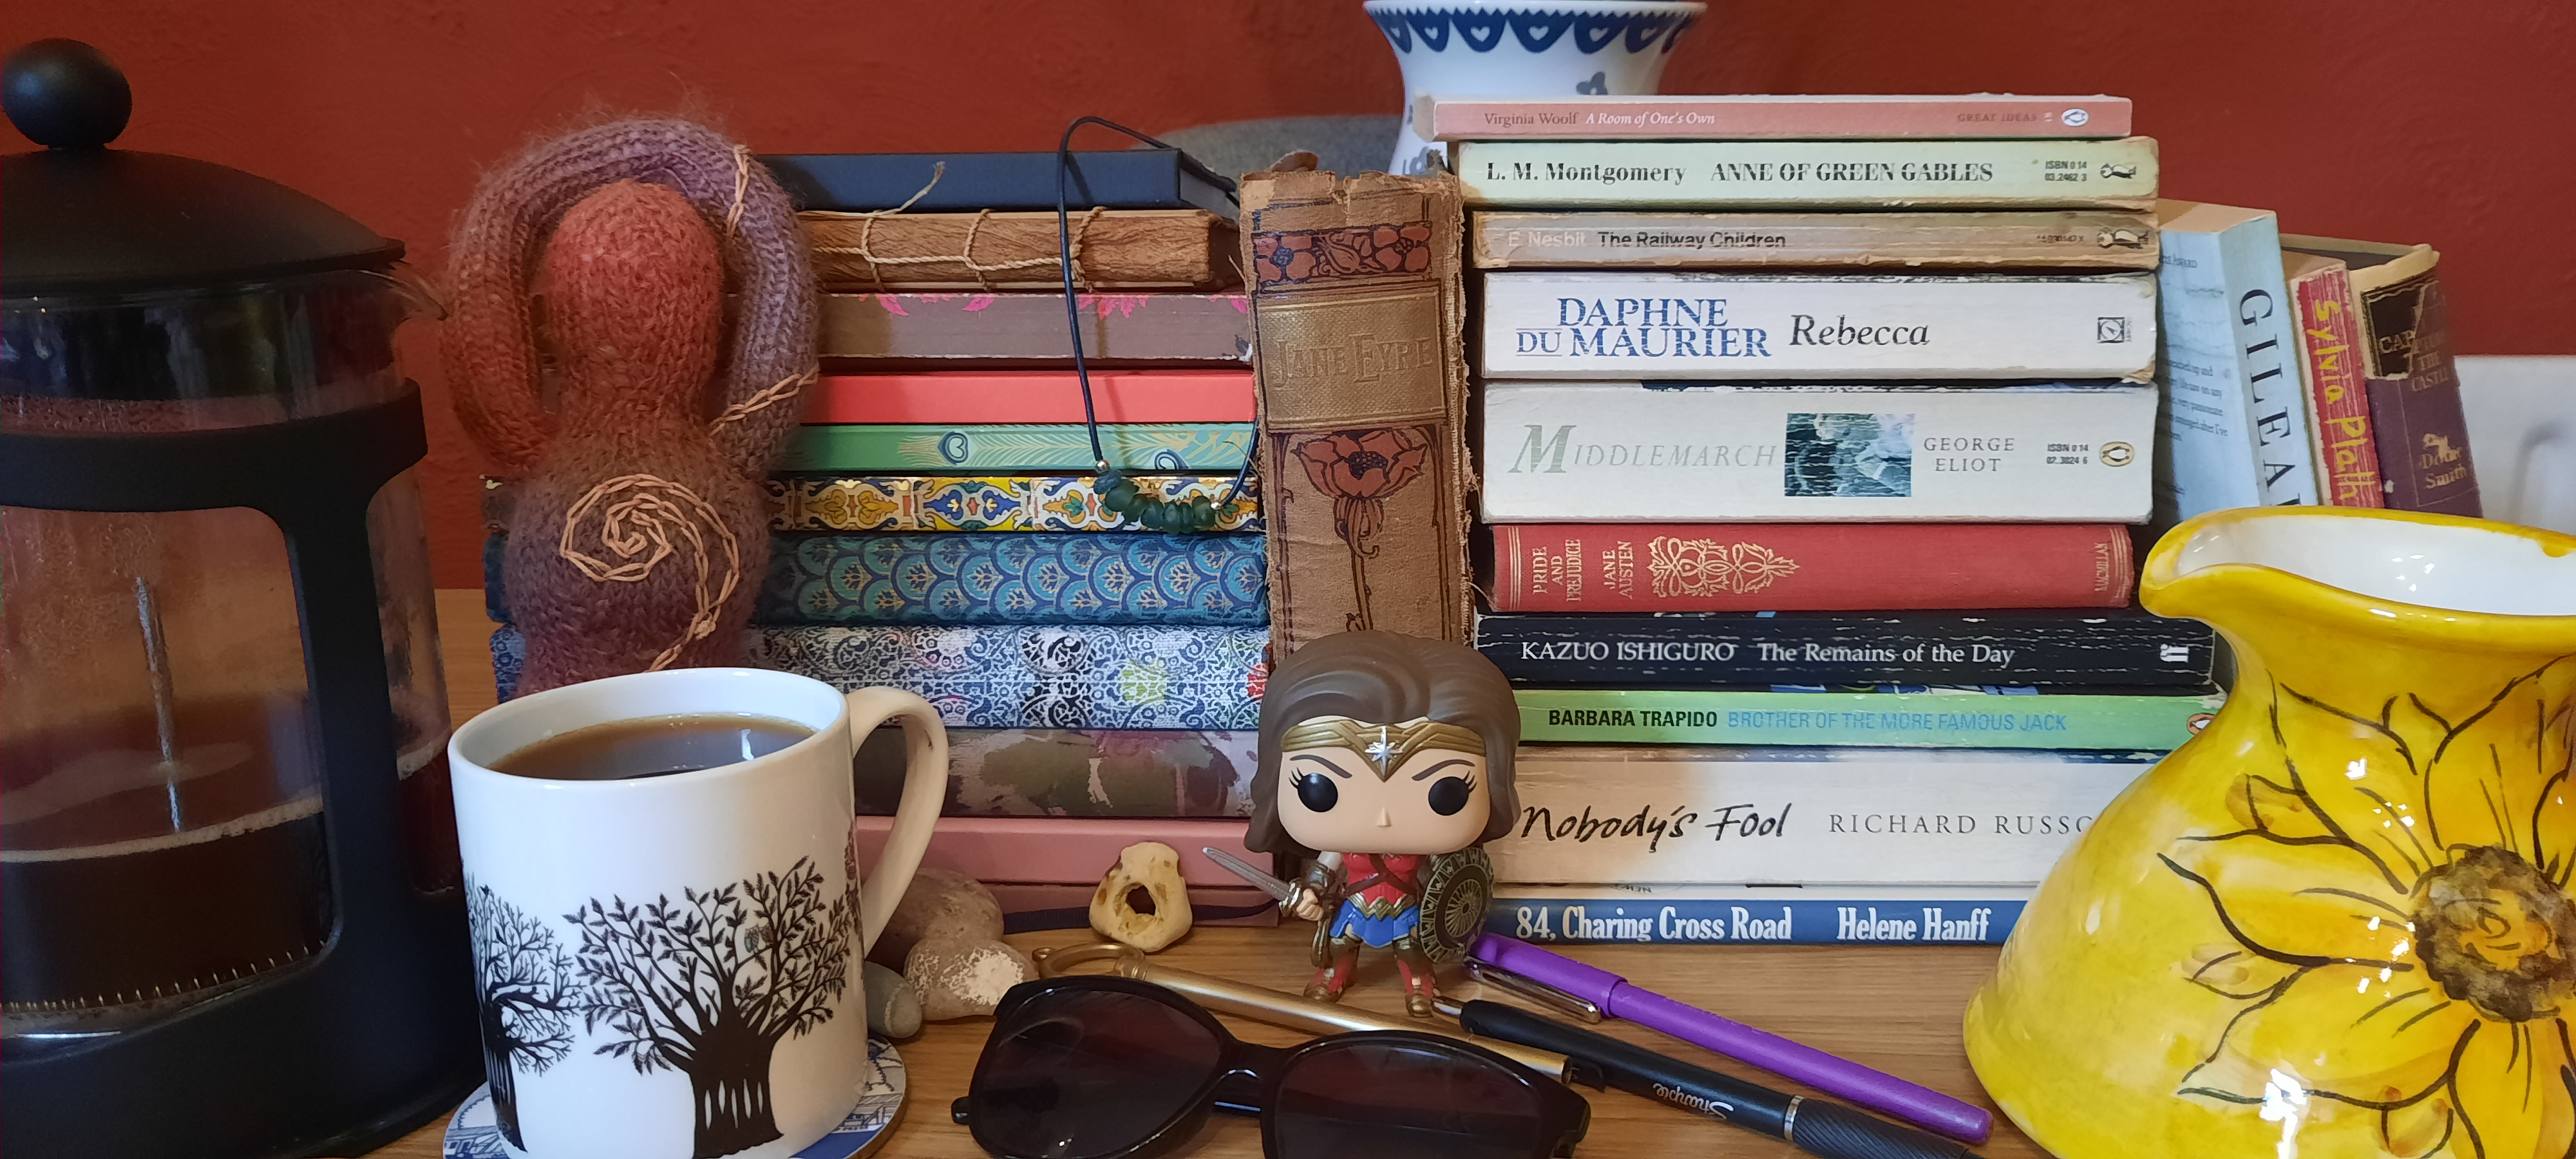 A picture of a pile of notebooks, next to a stack of published books, a jug with sunflowers on it, a pot of coffee, some pens, pebbles and sunflowers and a figure of Wonder Woman